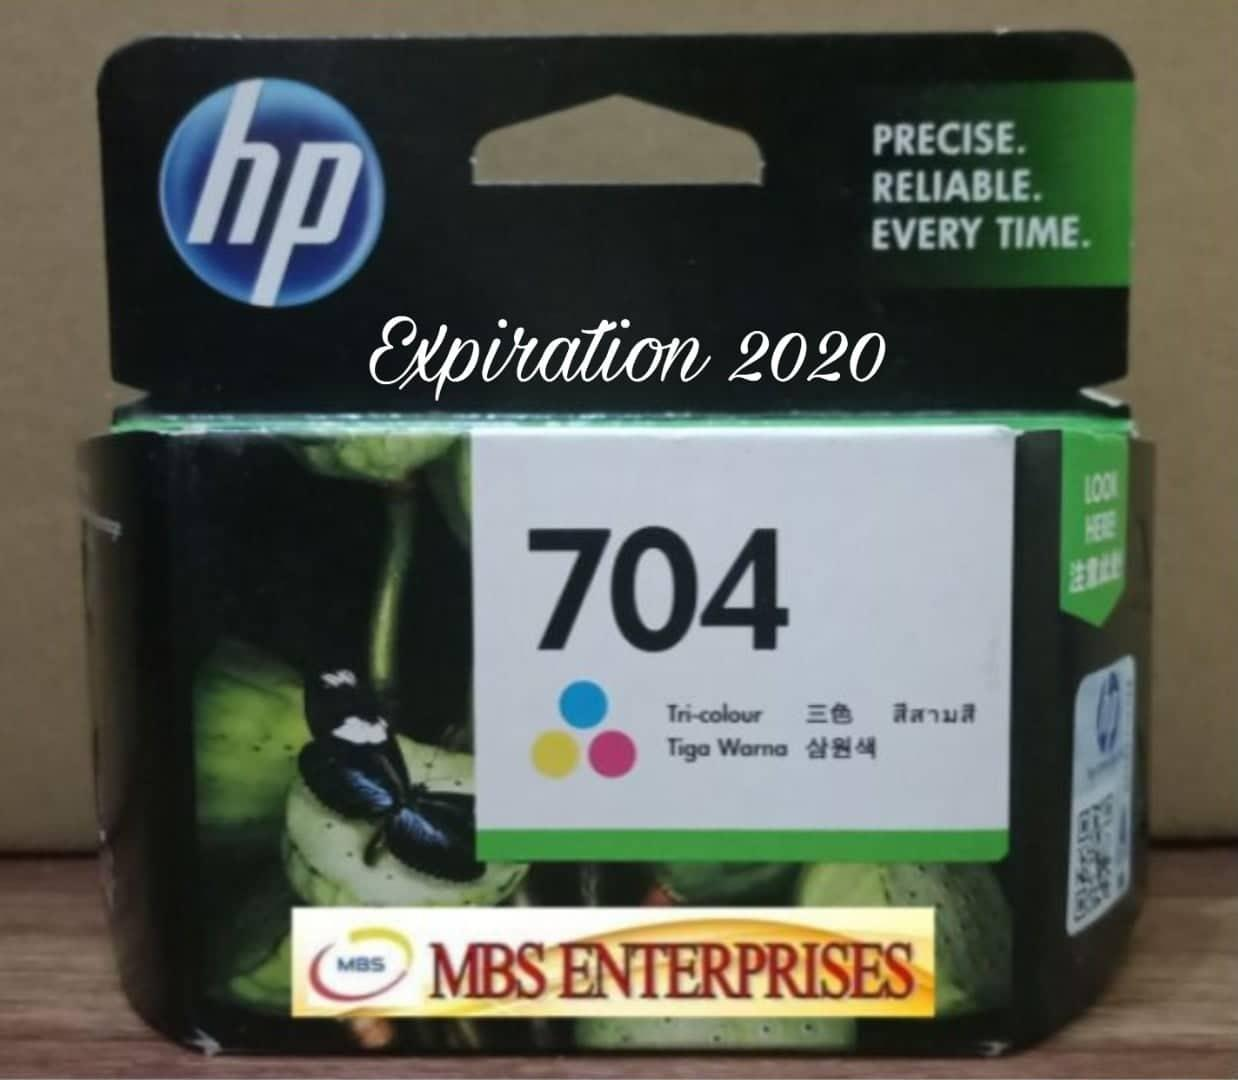 HP Philippines: HP price list - HP Laptop & Printer for sale   Lazada